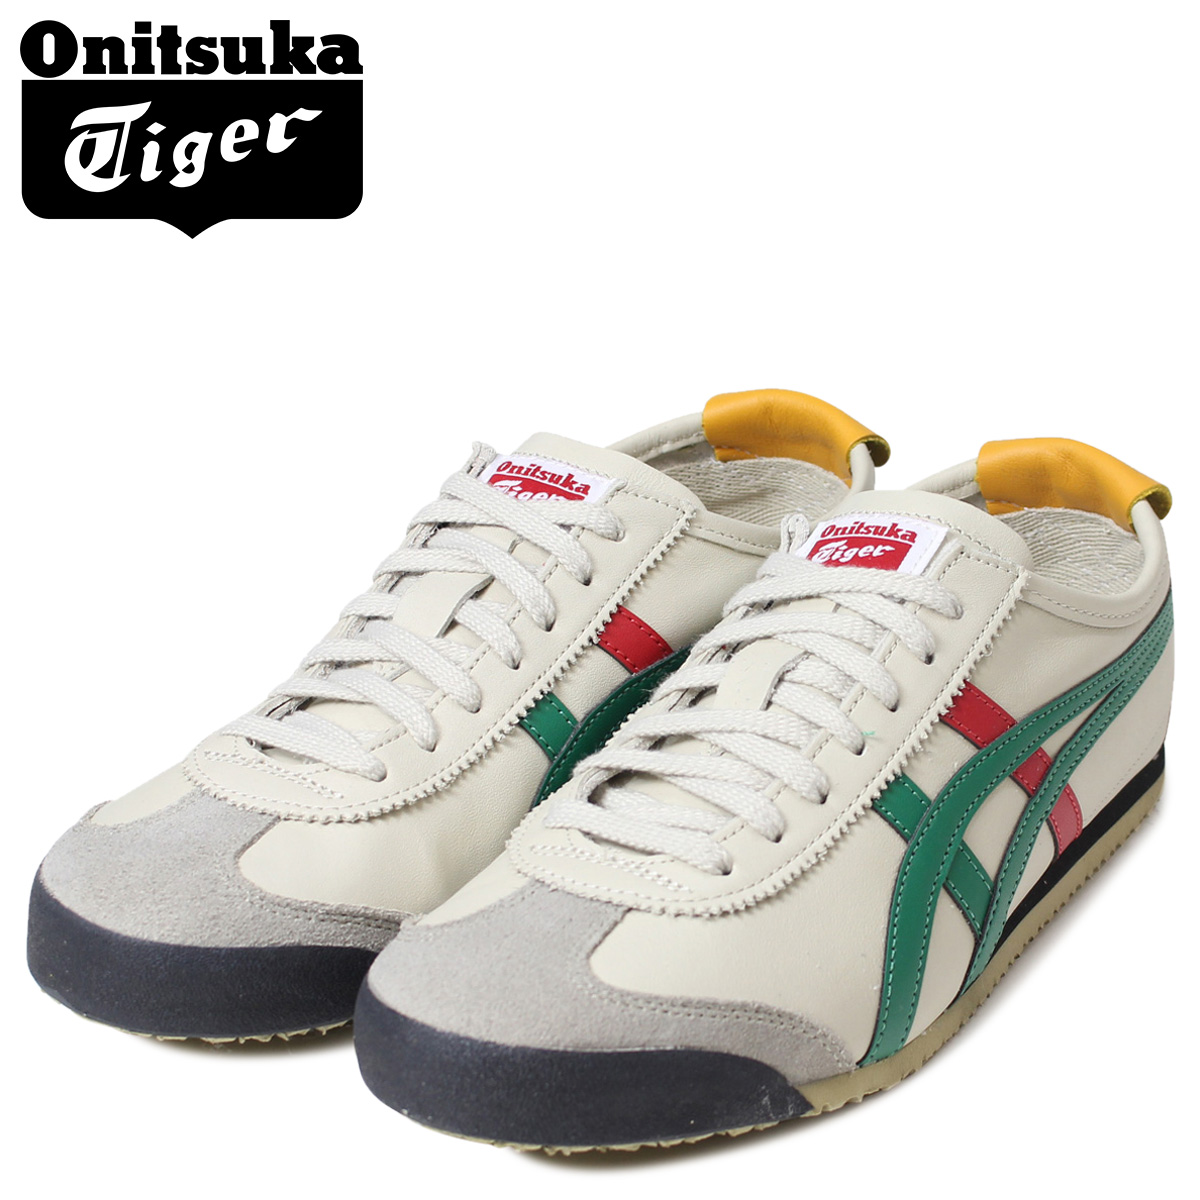 pretty nice 94a0d 49ad7 Onitsuka Tiger asics ONITSUKA Tiger ASICs Mexico 66 sneaker THL202-1684  MEXICO 66 men's women's shoes natural